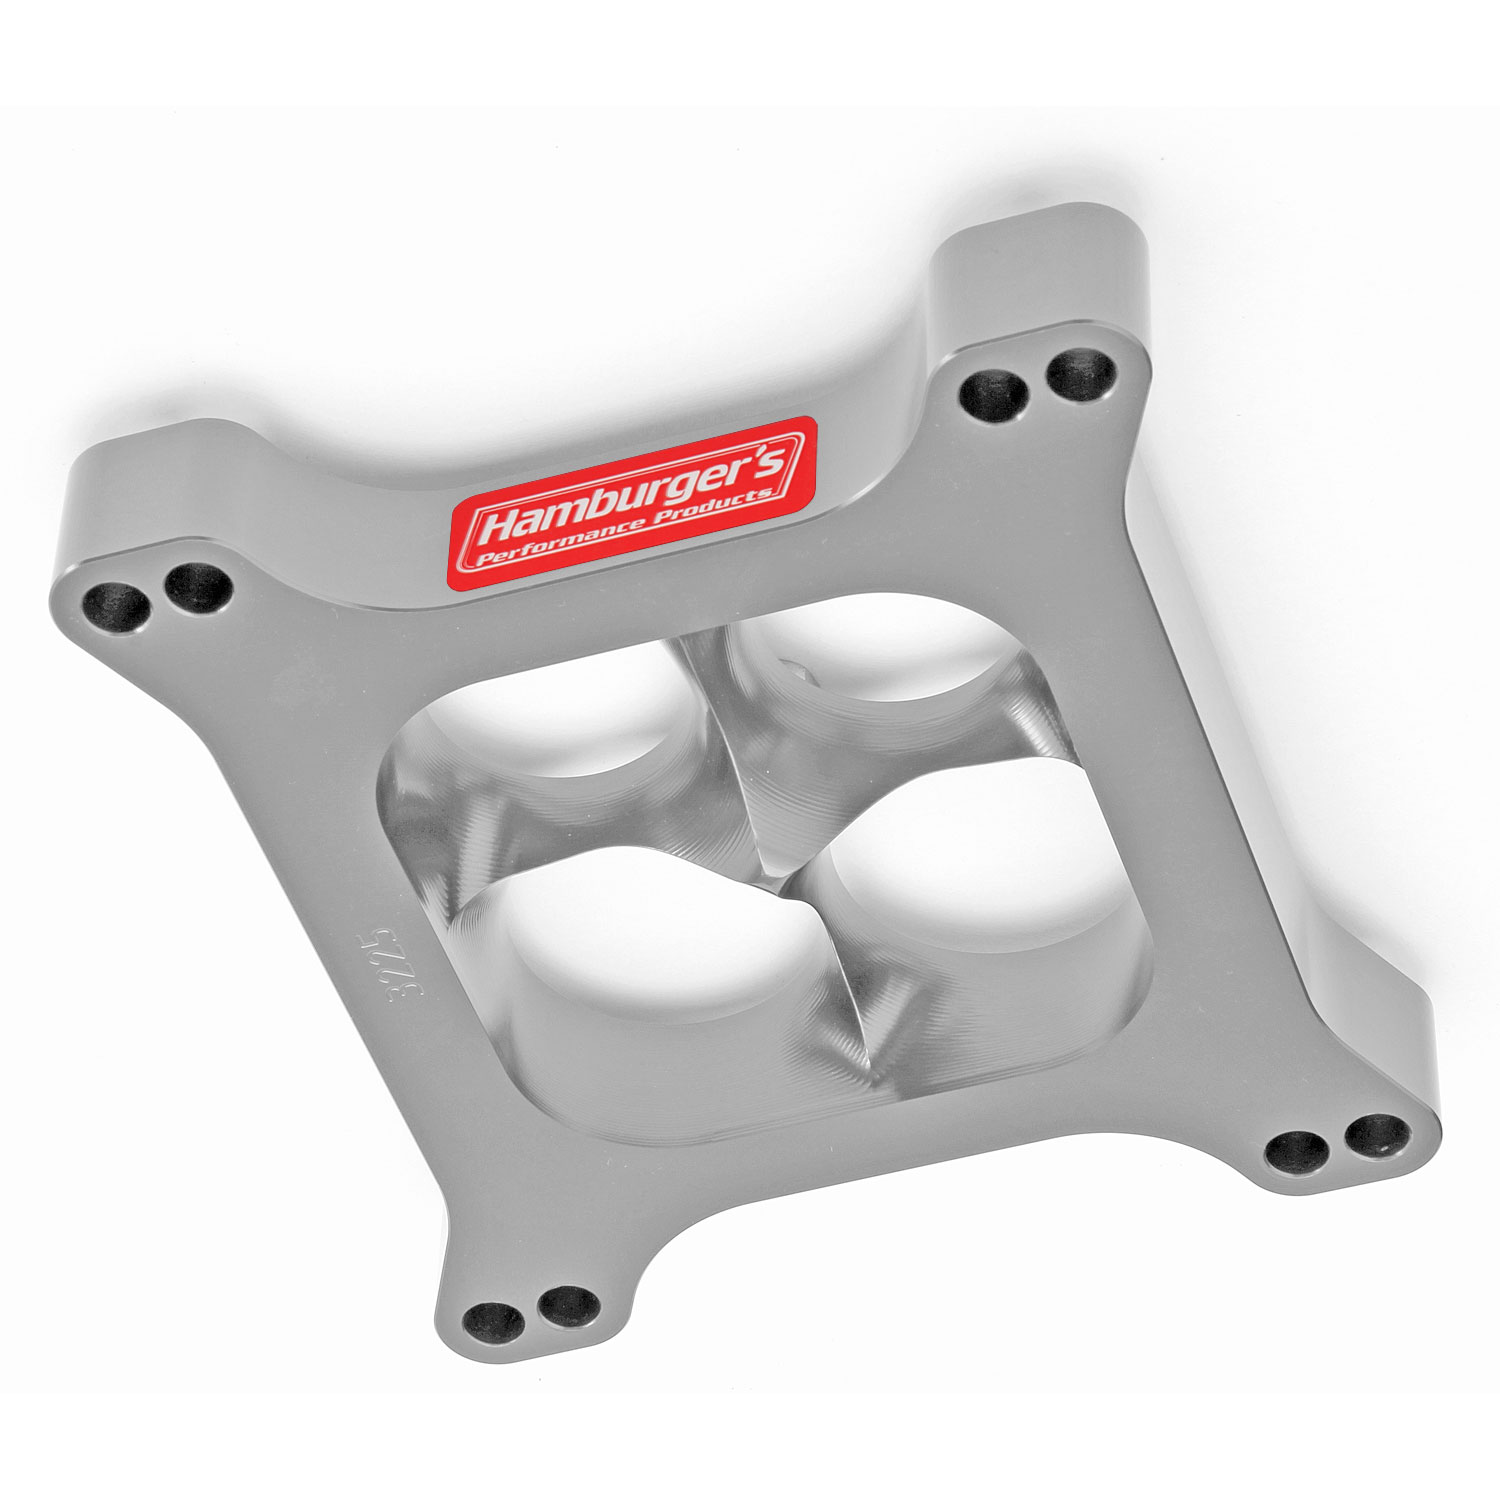 Hamburger's 3225 - Hamburger's AVS Carburetor Spacers